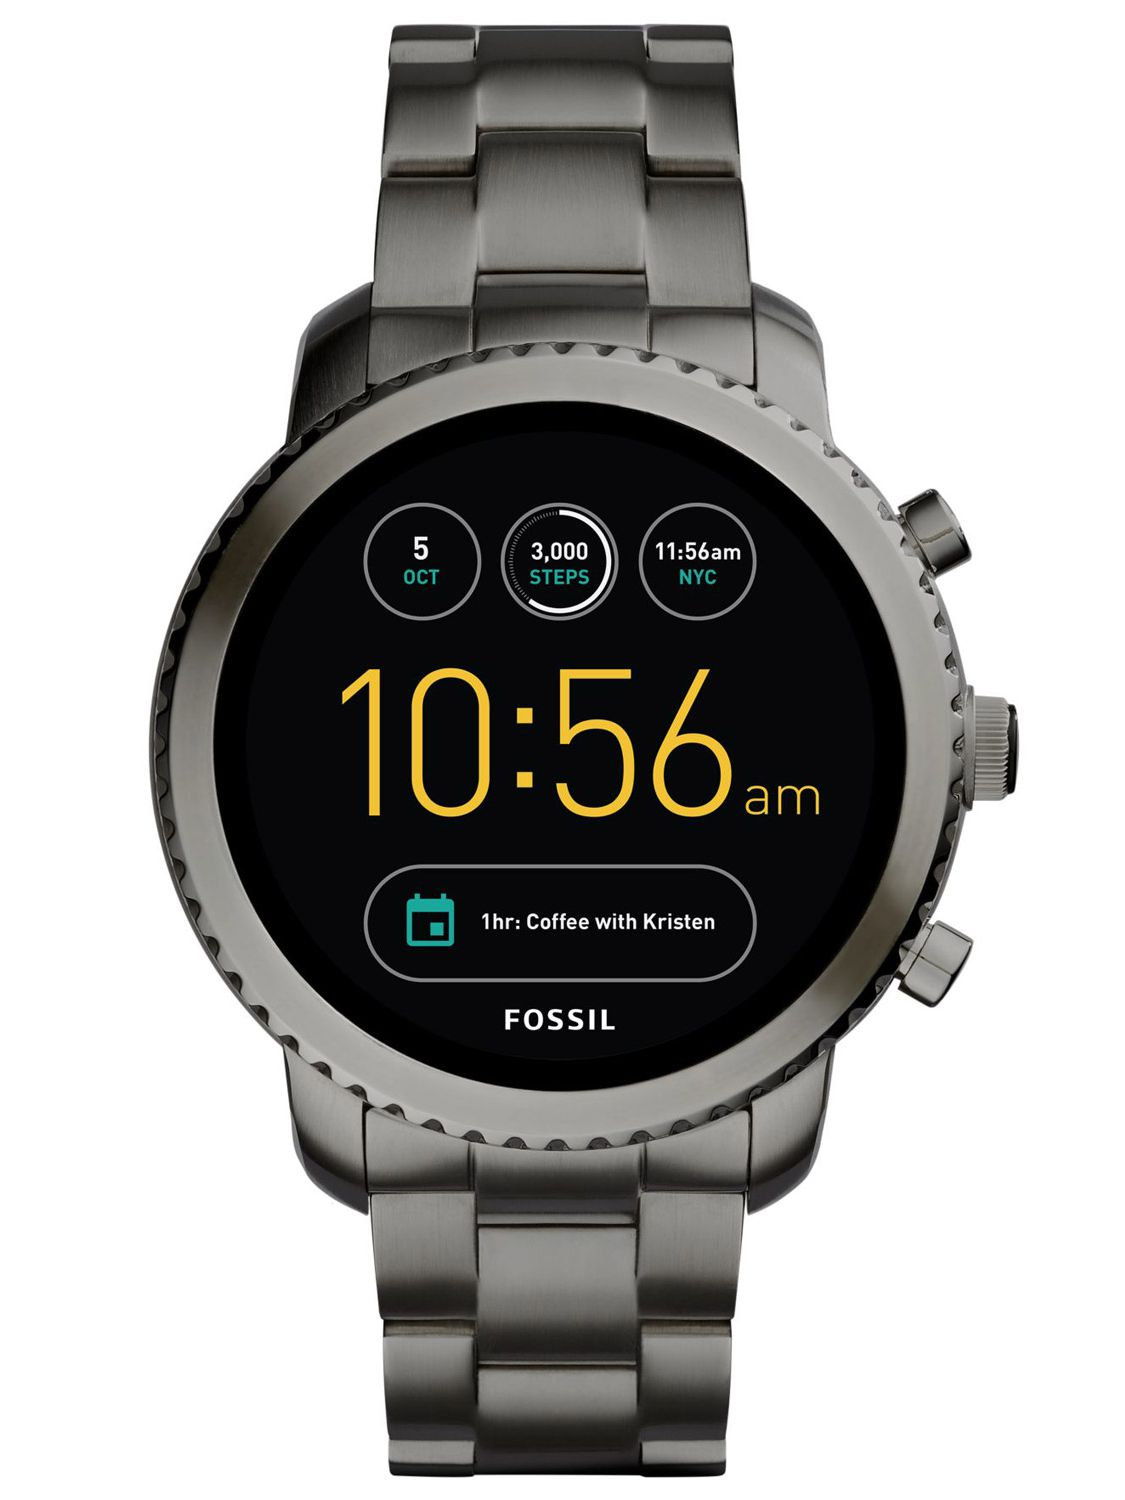 fossil q explorist mens smartwatch touchscreen ftw4001. Black Bedroom Furniture Sets. Home Design Ideas